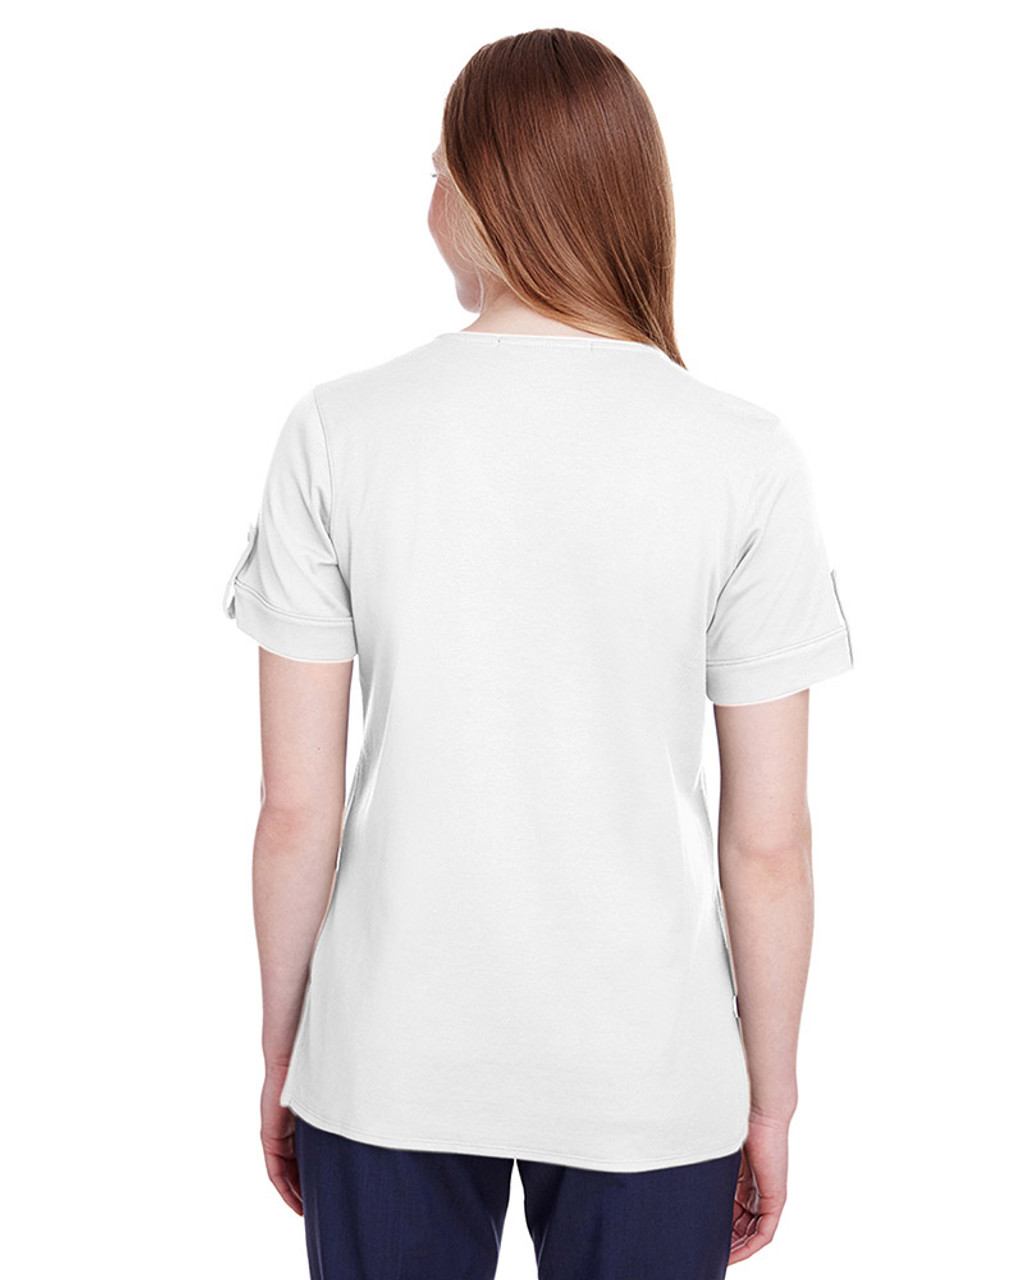 White - back, DG20WB Devon & Jones Ladies' CrownLux Performance™ Plaited Rolled-Sleeve Top | Blankclothing.ca